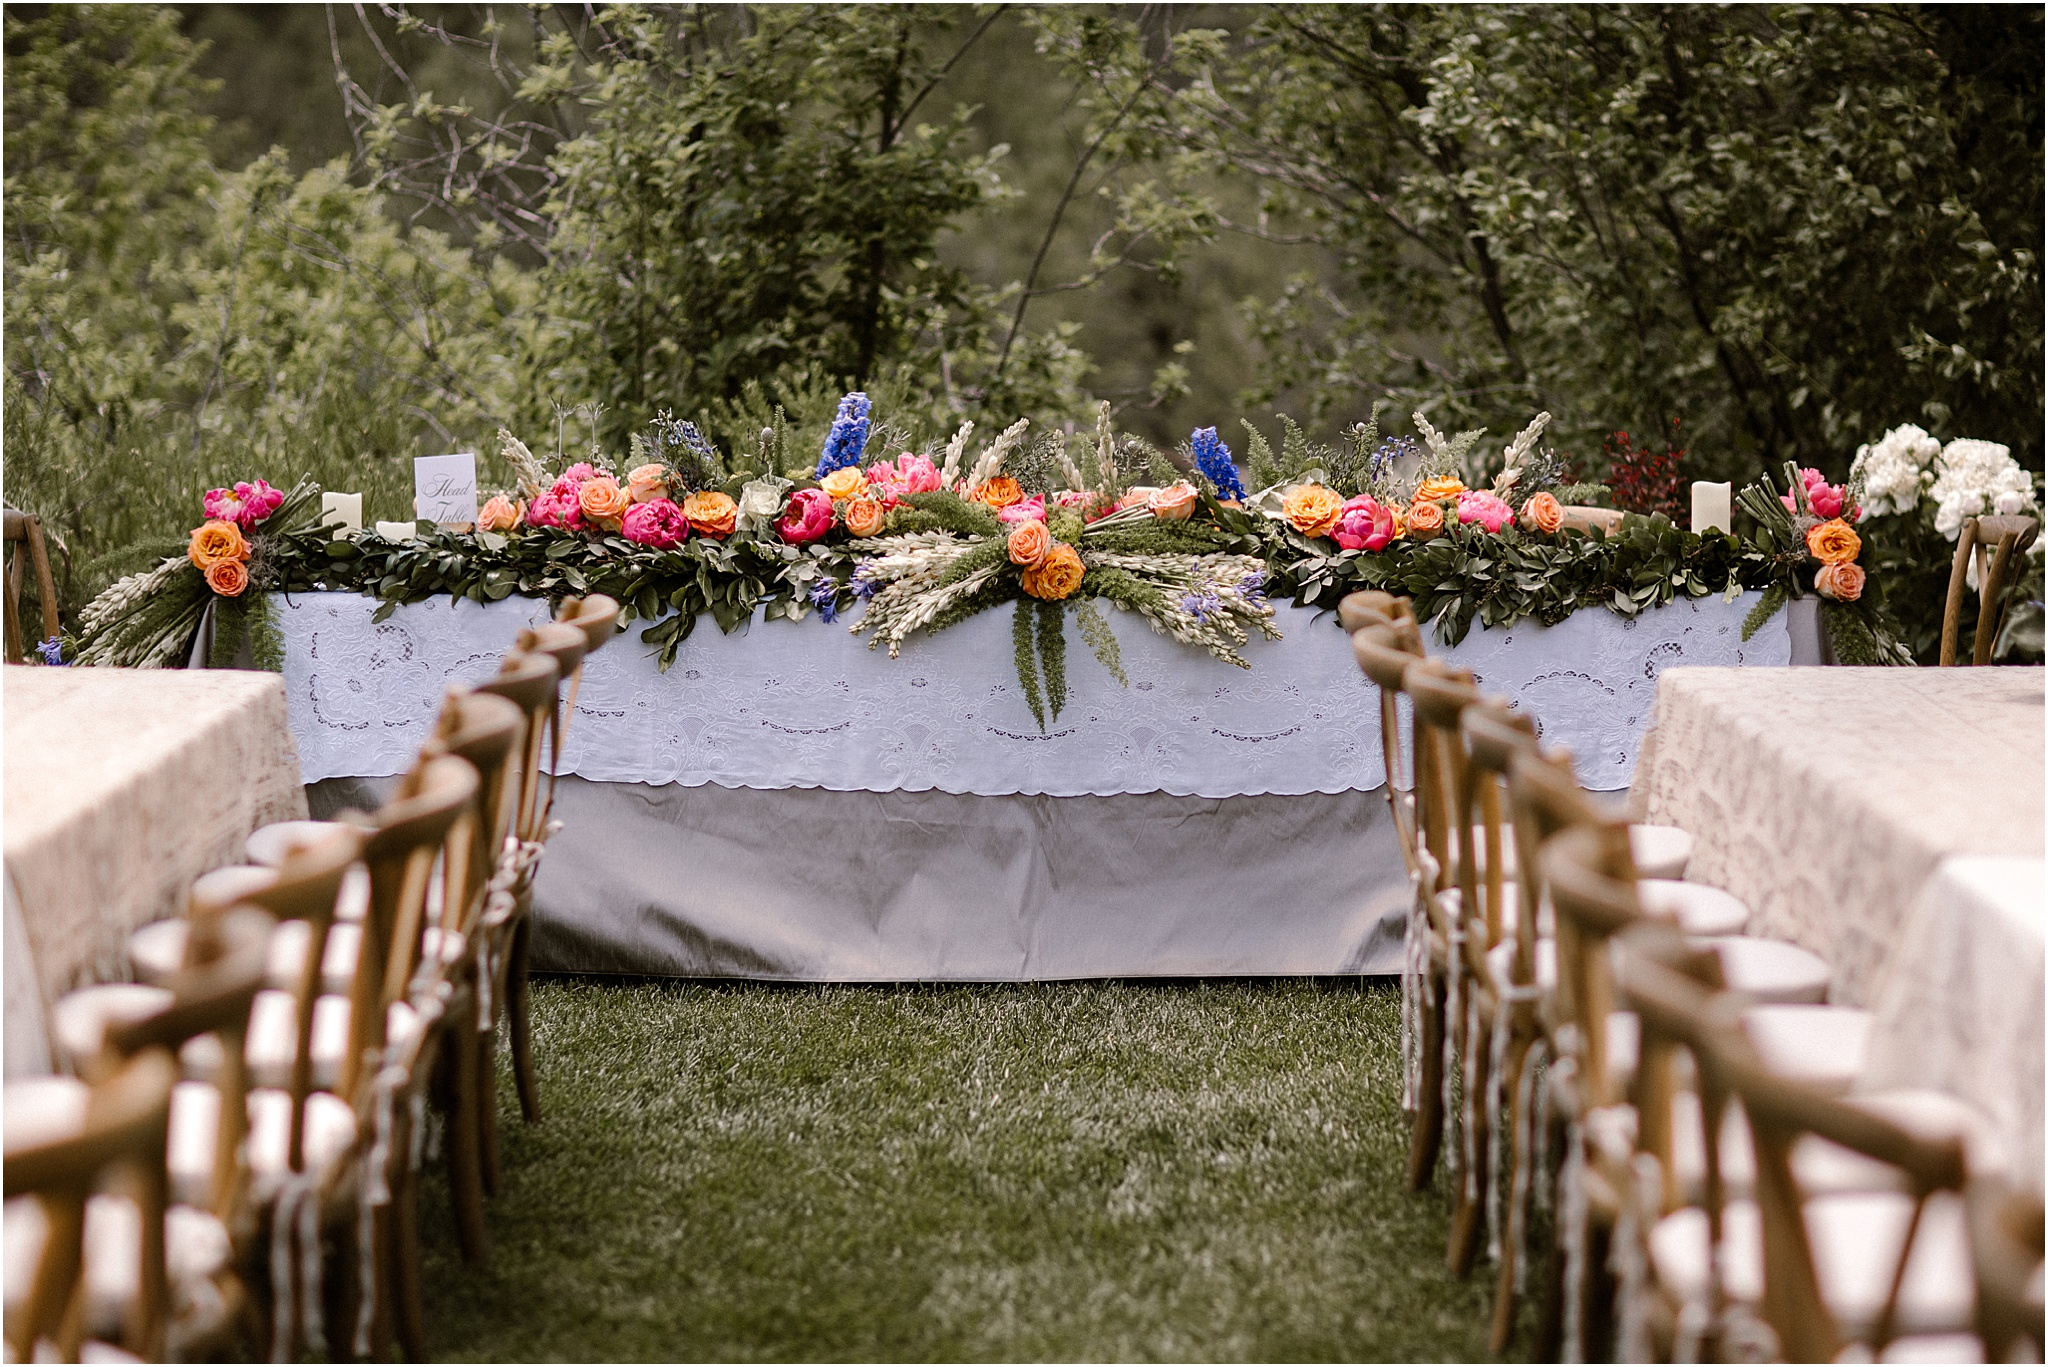 AMELIA_JASON_SANTA FE_ WEDDING_BLUE ROSE PHOTOGRAPHY15